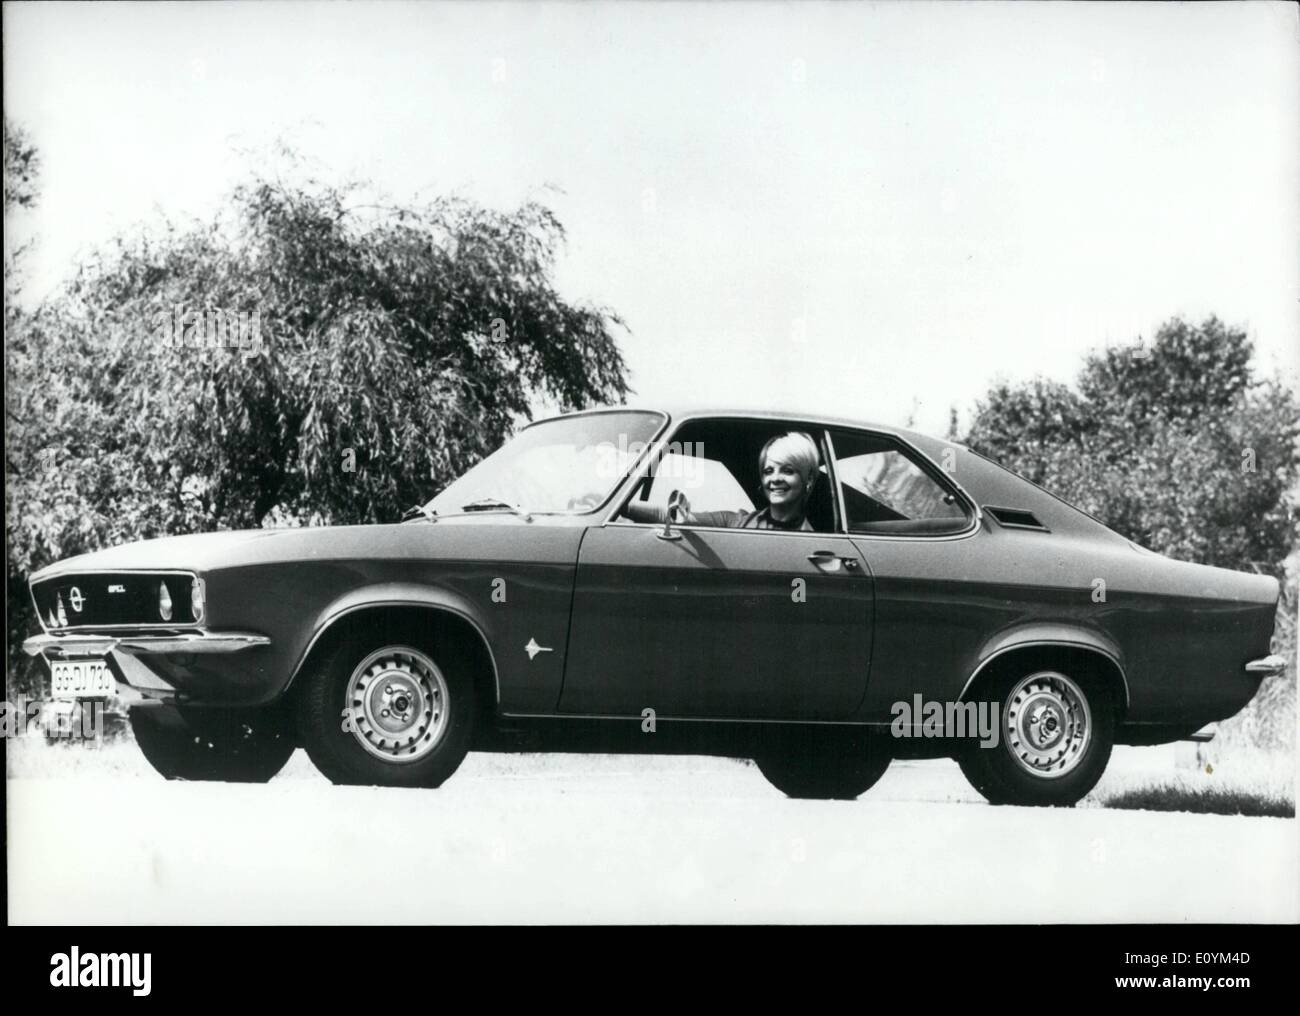 Sep. 09, 1970 - The Opel Manta... ...represents a completely new car class within the gales program of the Russelsheim company. - Stock Image